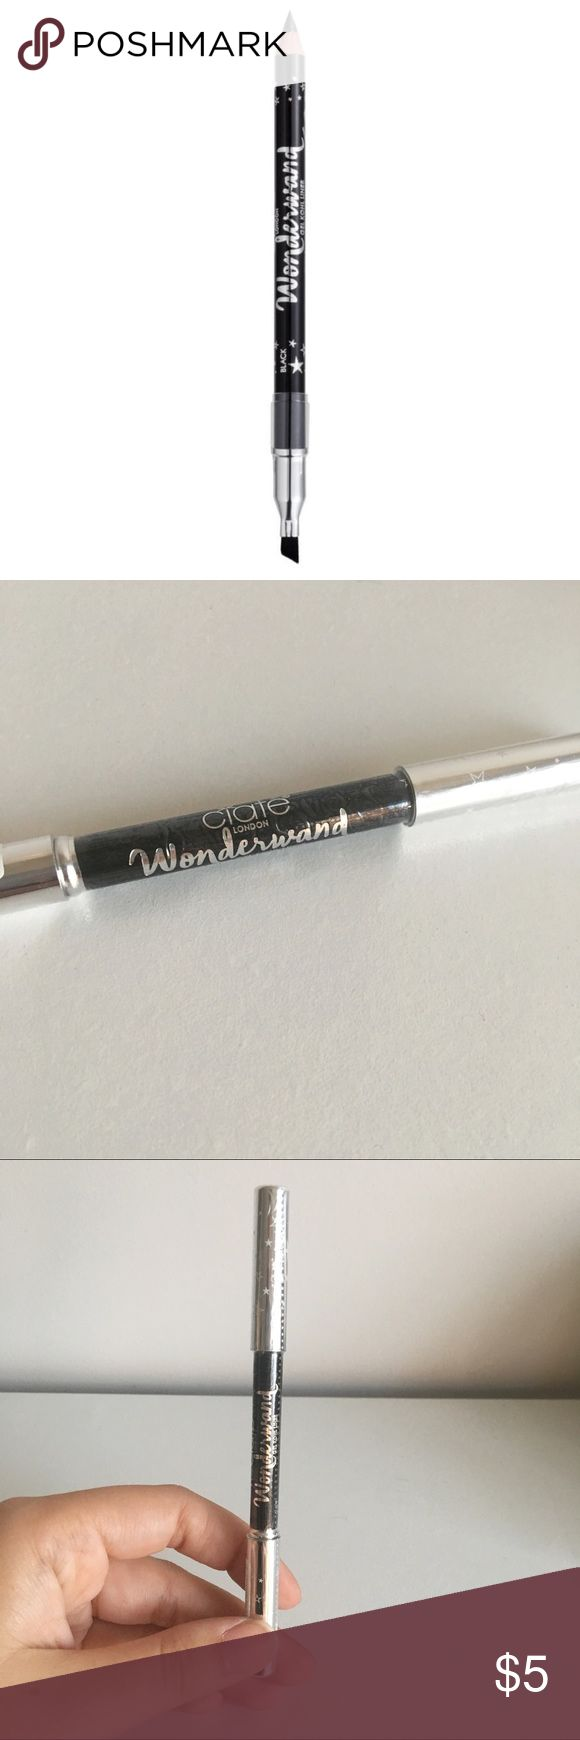 Ciate London Wonderwand Eyeliner - Ciate London Wonderwand eye liner - Gel kohl liner - Never opened Ciate London Makeup Eyeliner